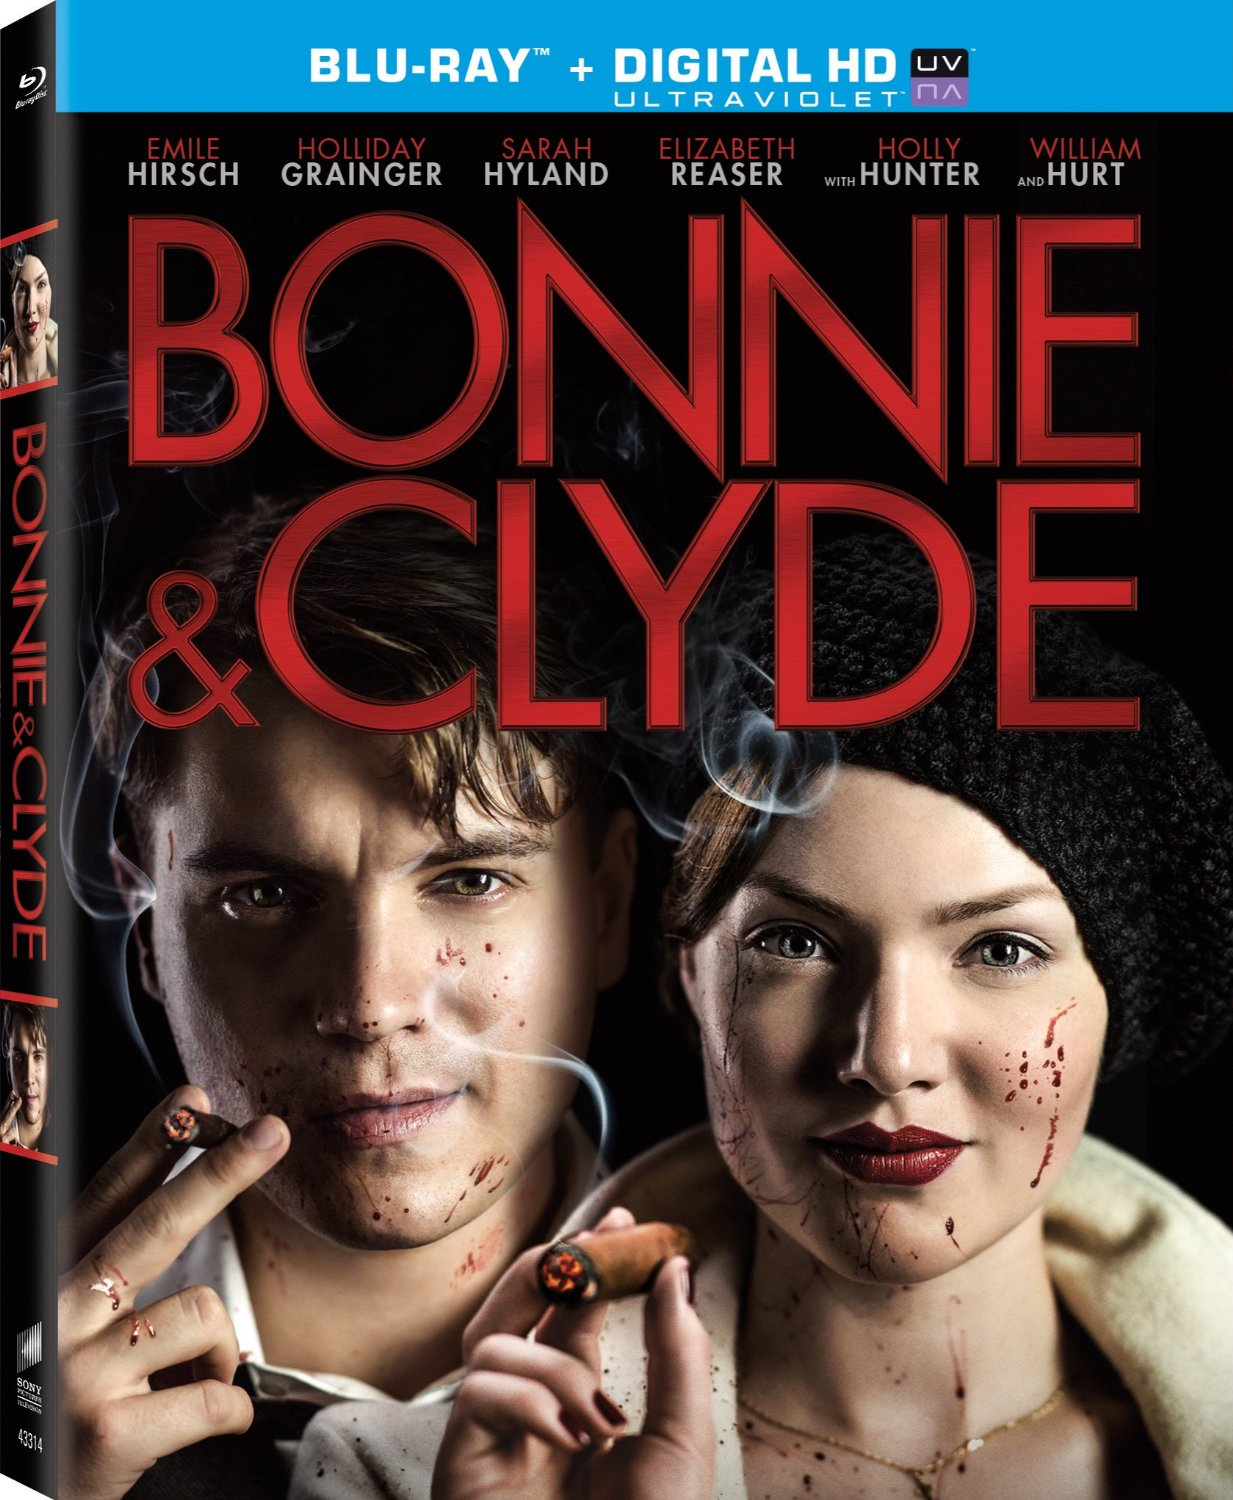 bonnie and clyde bluray review cinema deviant